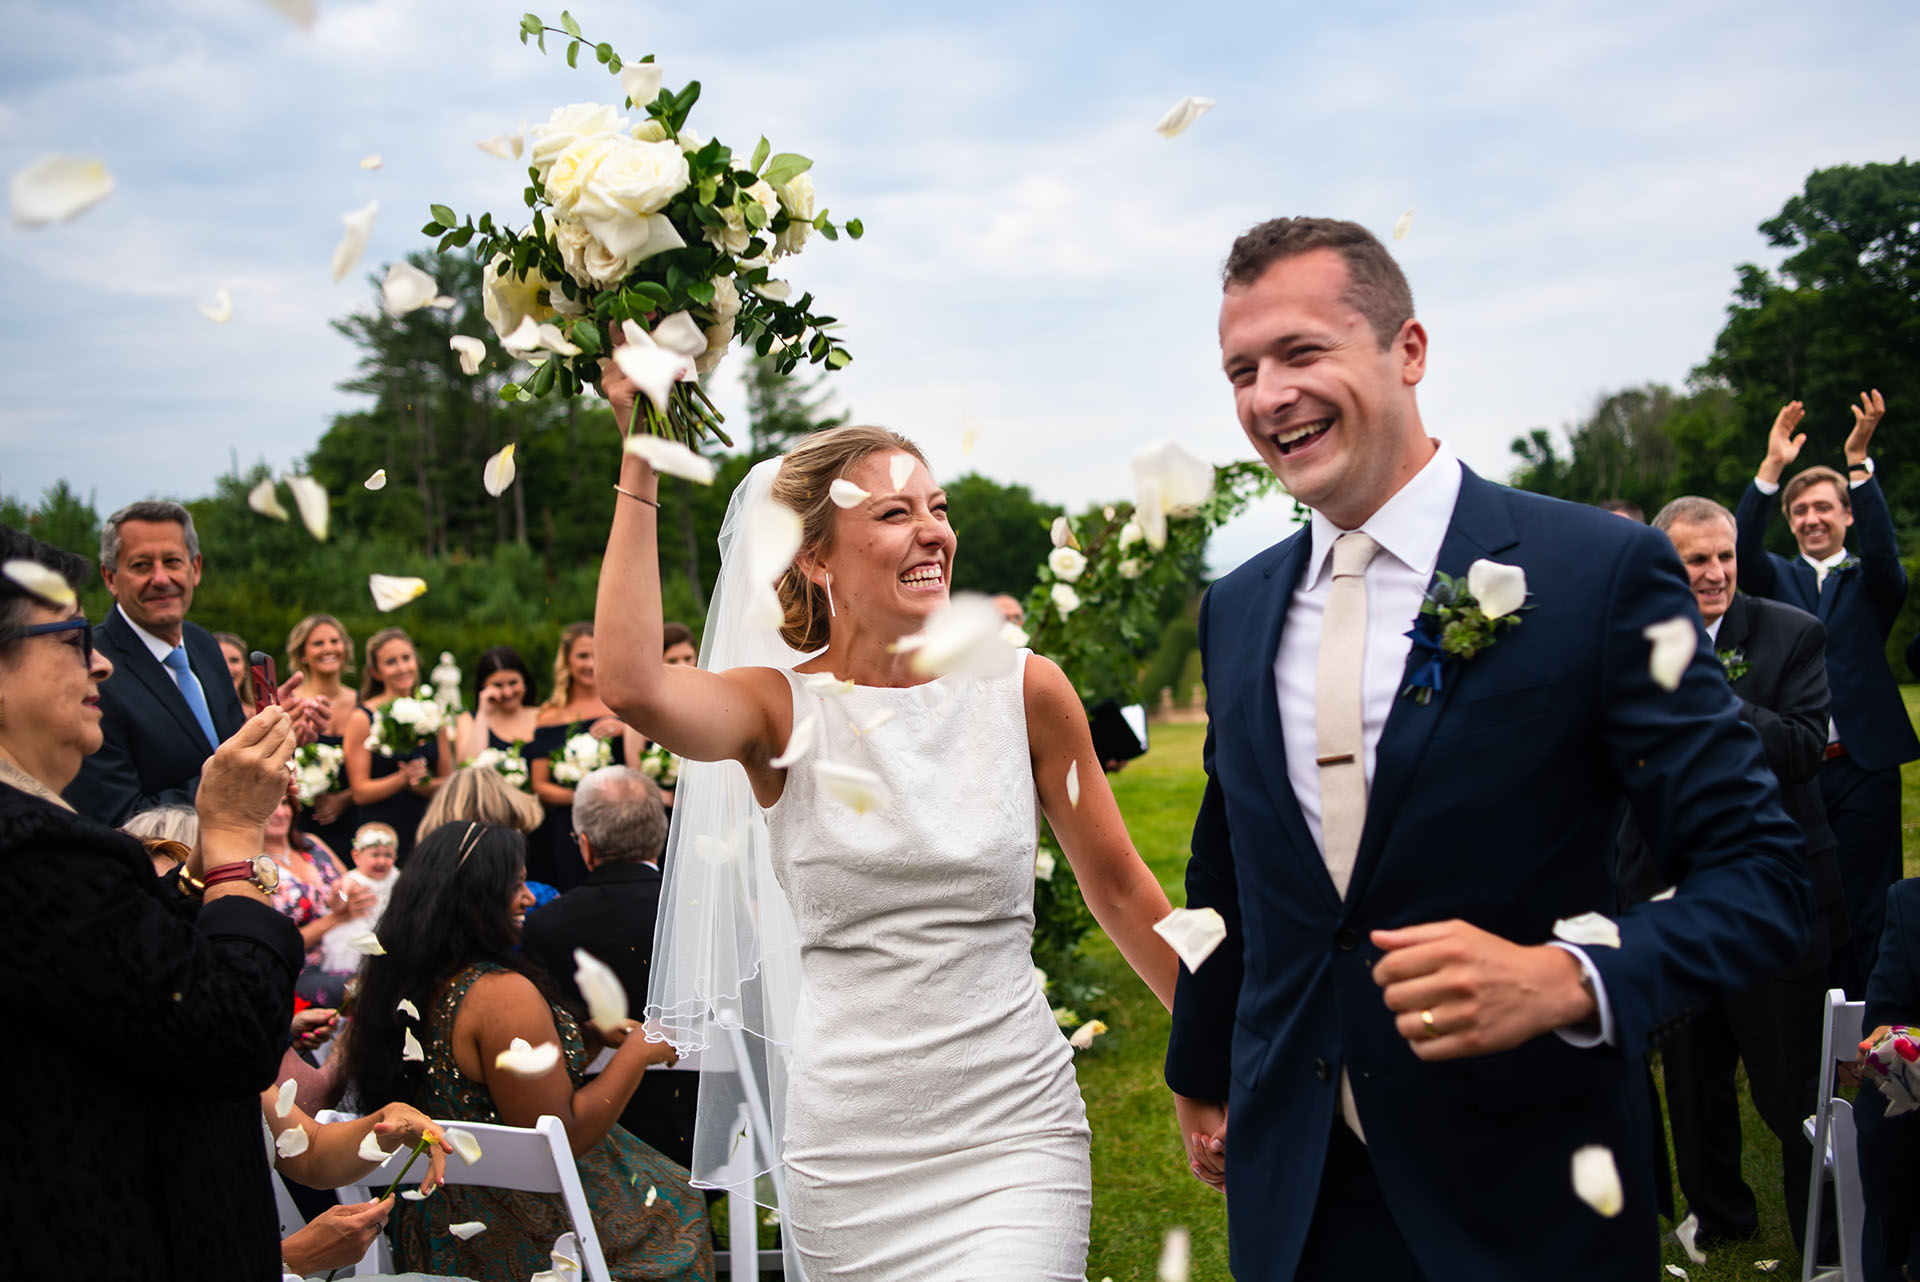 The Celebration Begins with flower petals for the bride and groom at the end of this outdoor wedding ceremony